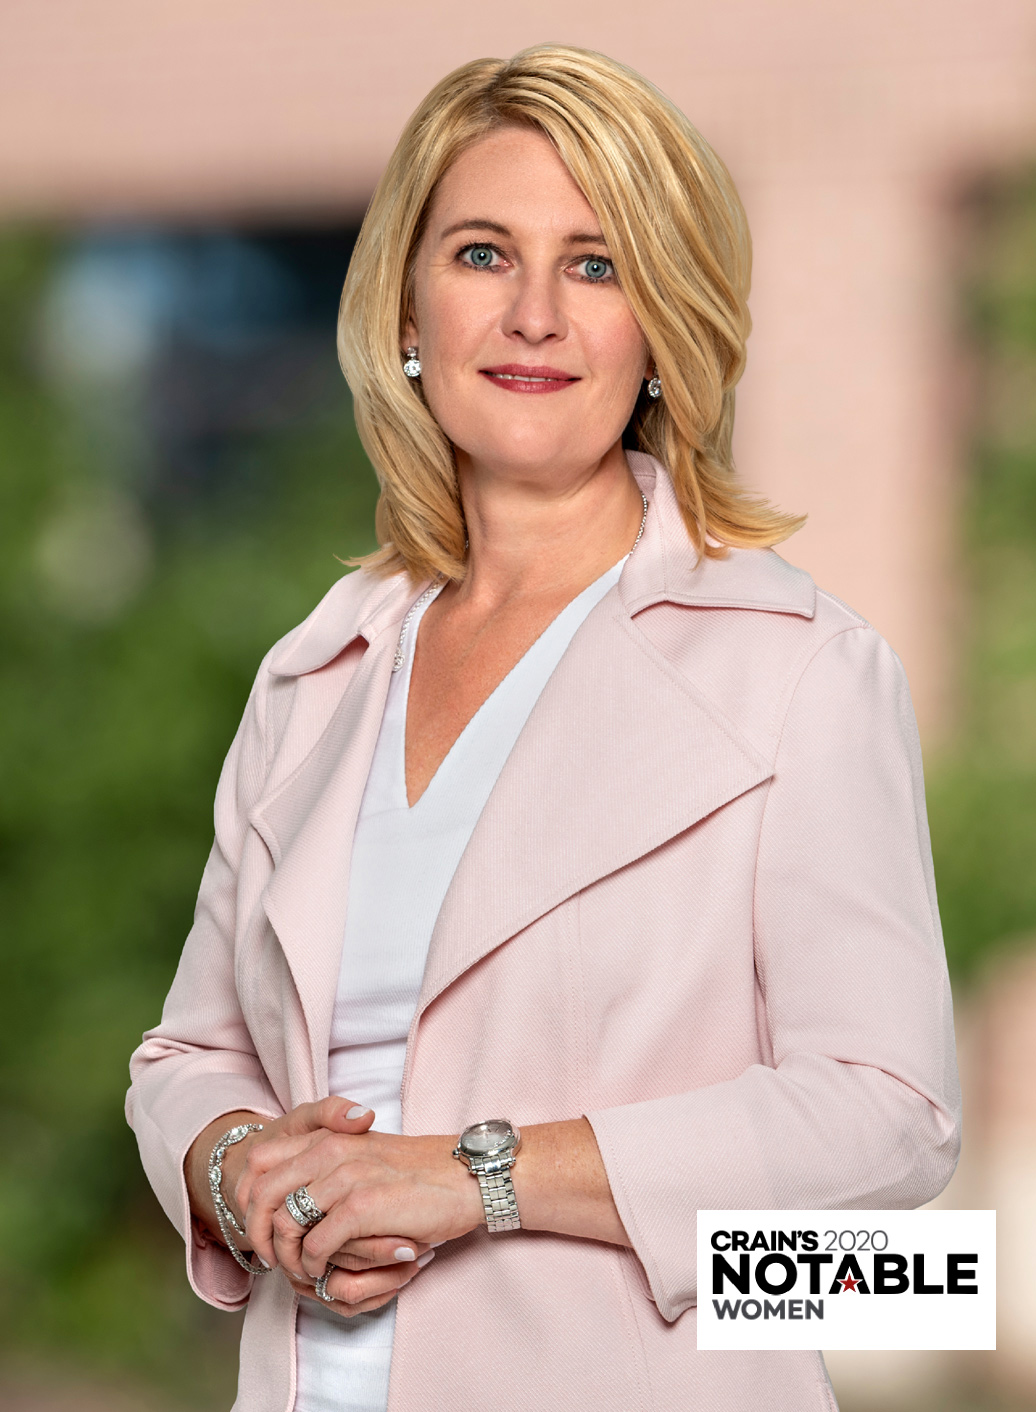 outdoor headshot of female executive